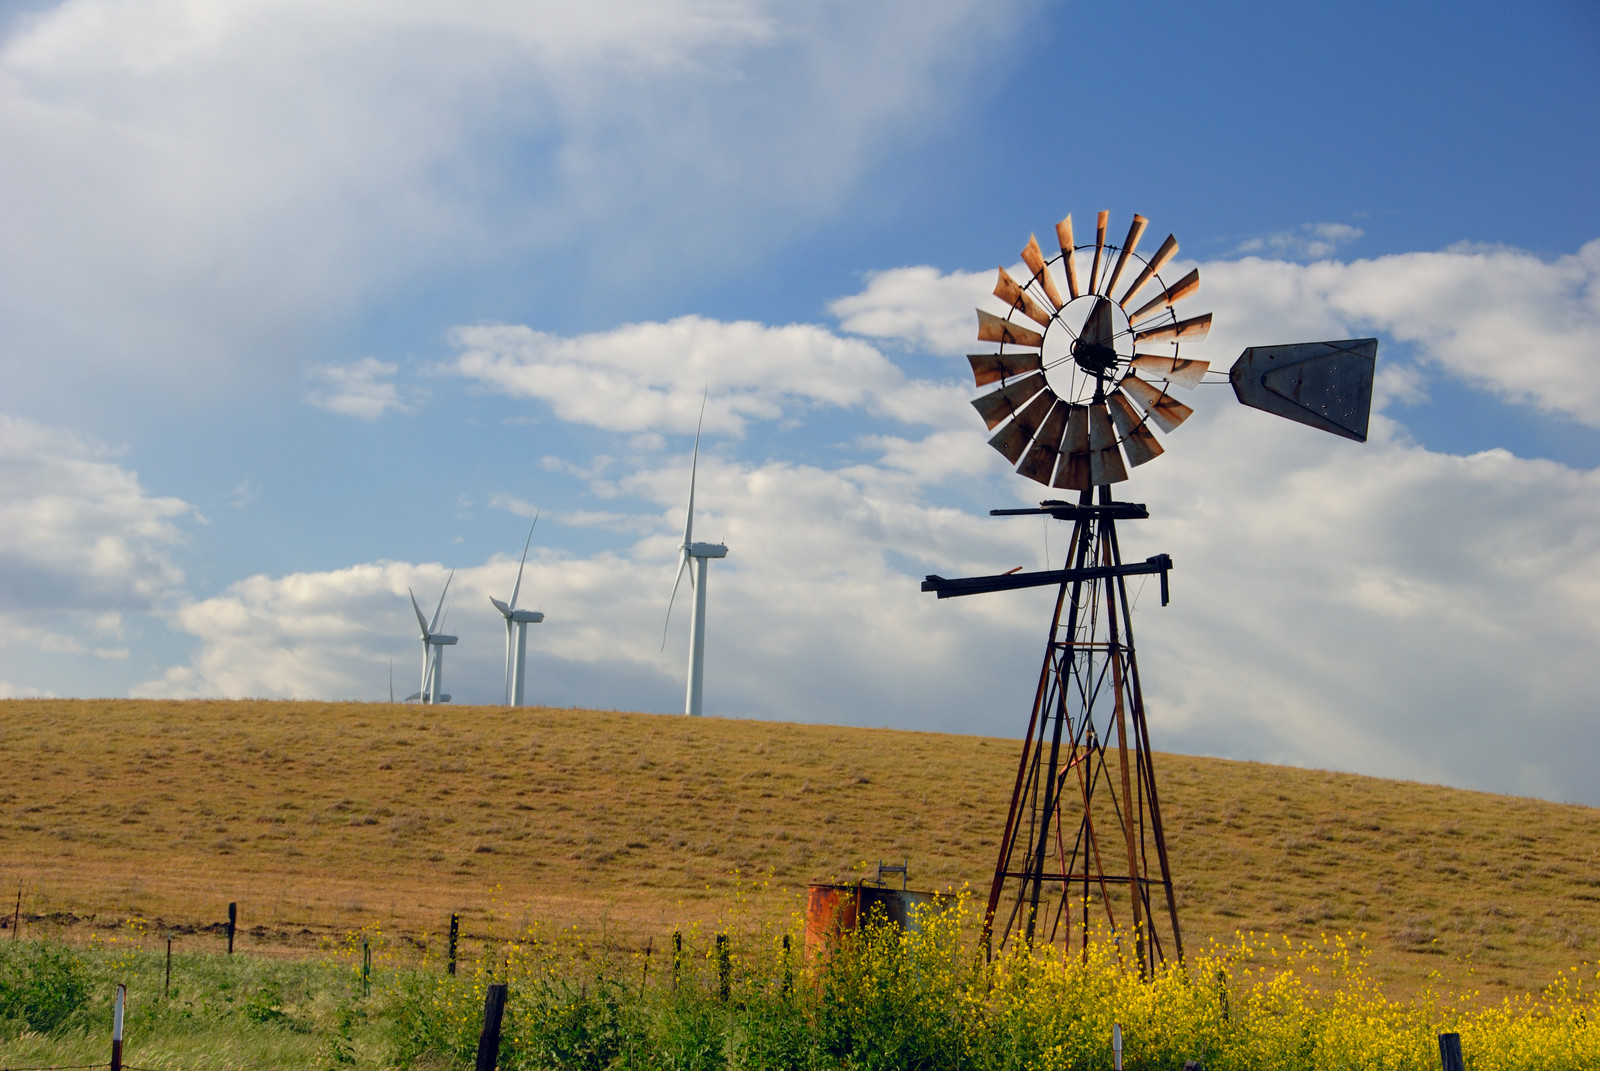 Older style ranch windmill set against new electrical power generating windmills, in the fields of rio vista, california